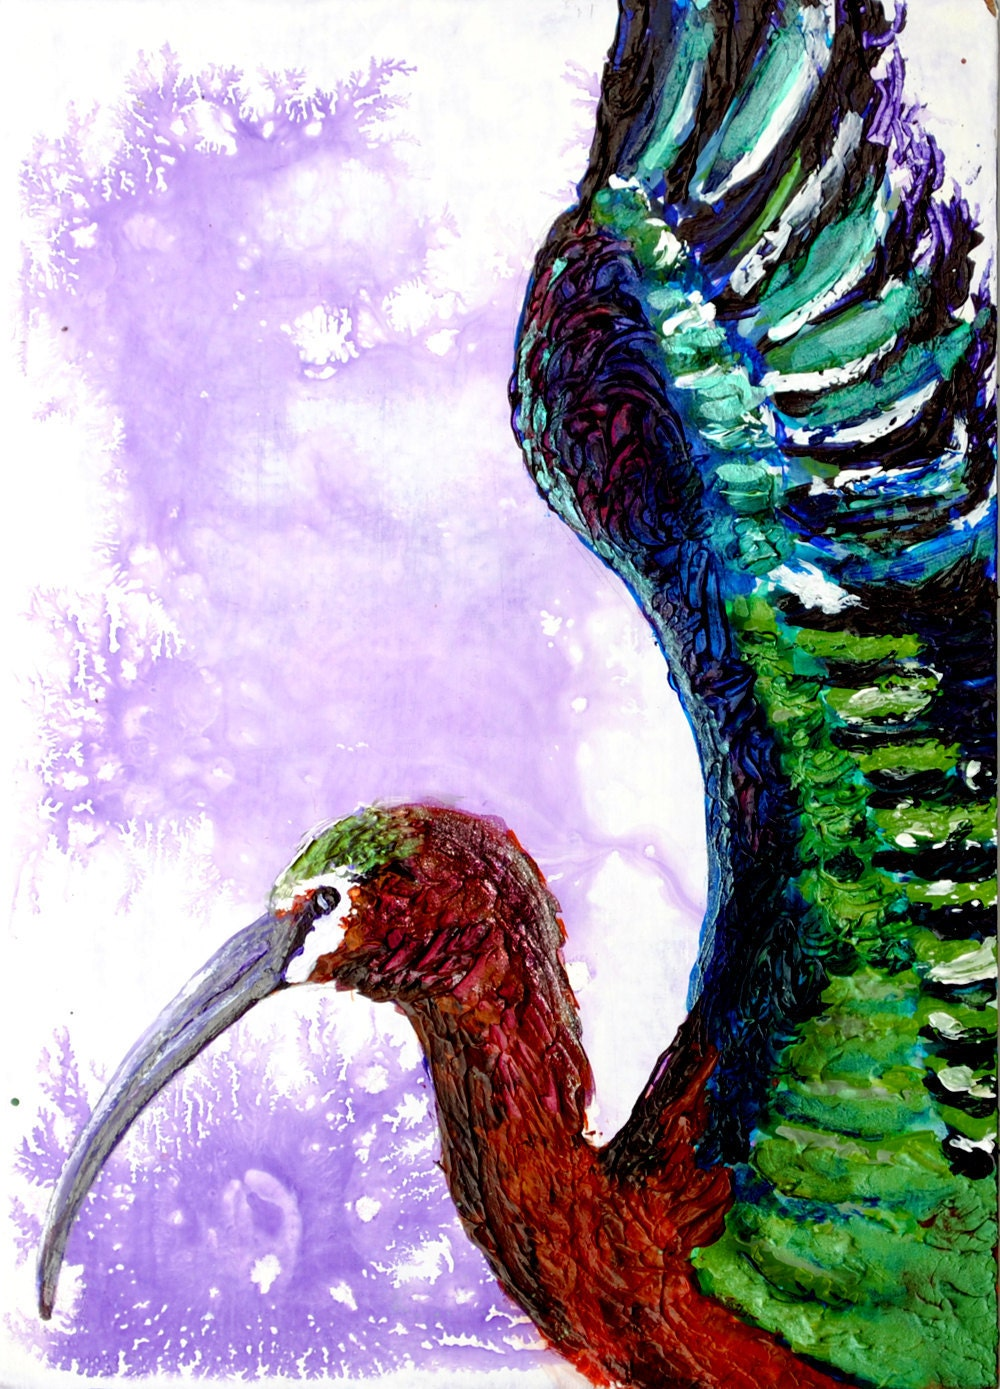 Ibis Bird Painting - Abstract Acrylic - BobbisMixedMediaArt